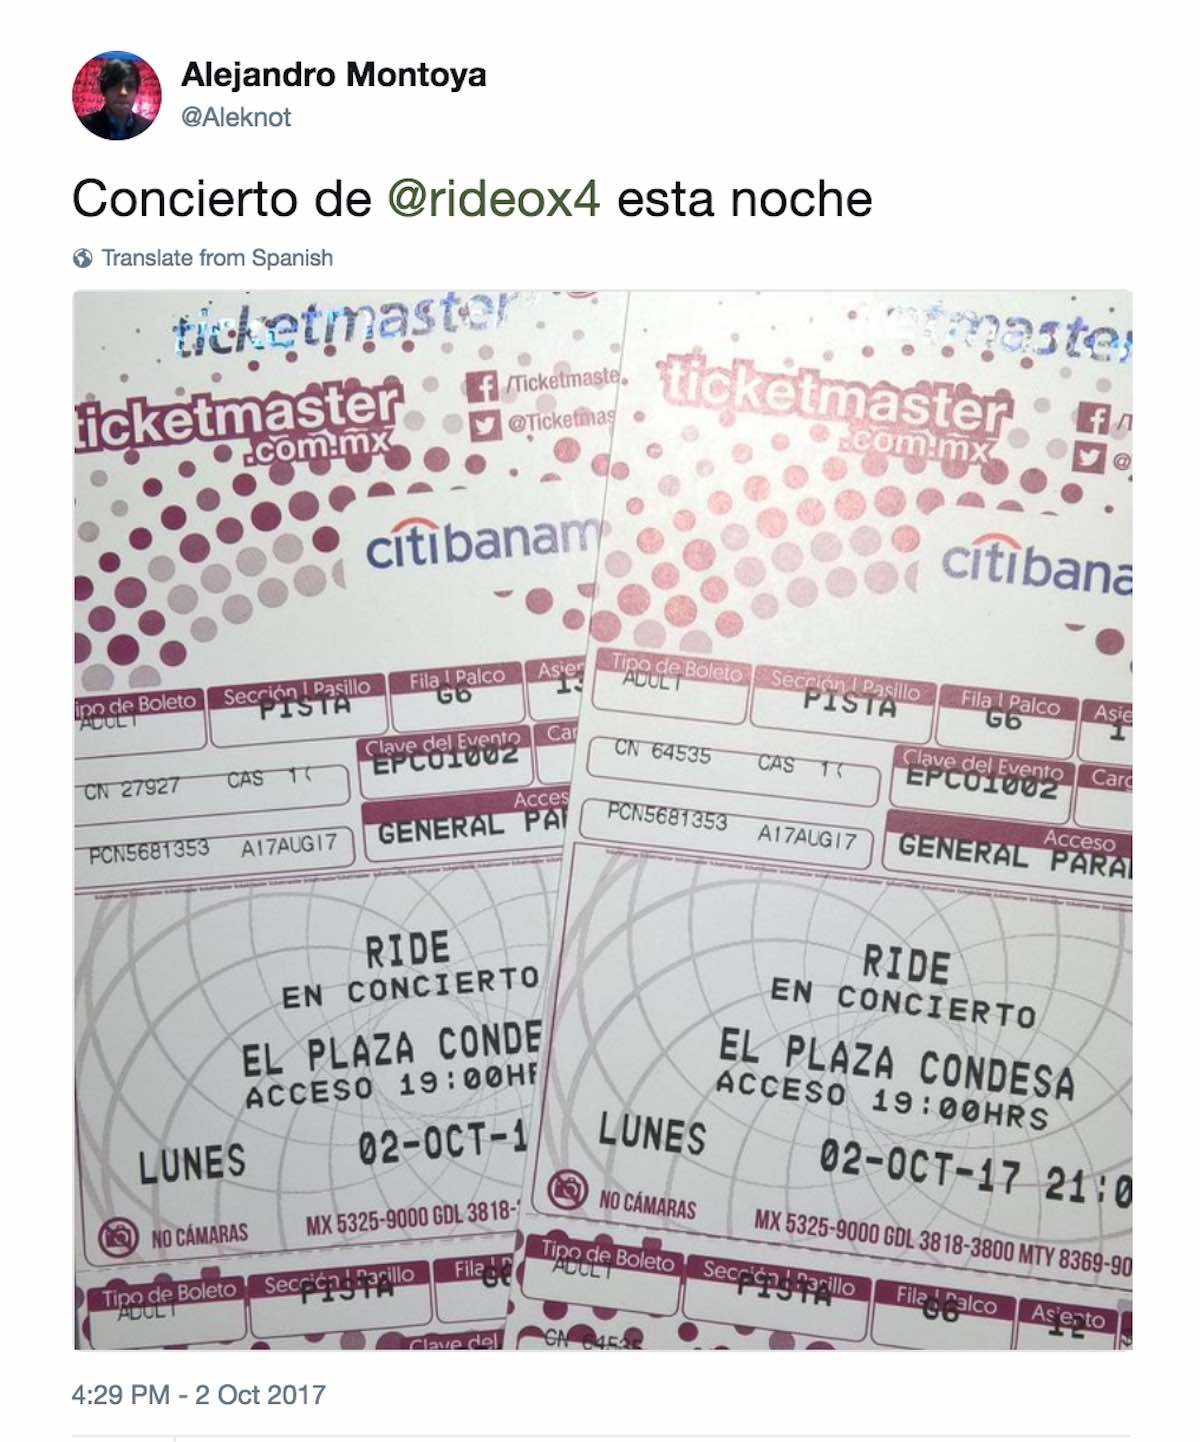 Tweet of tickets